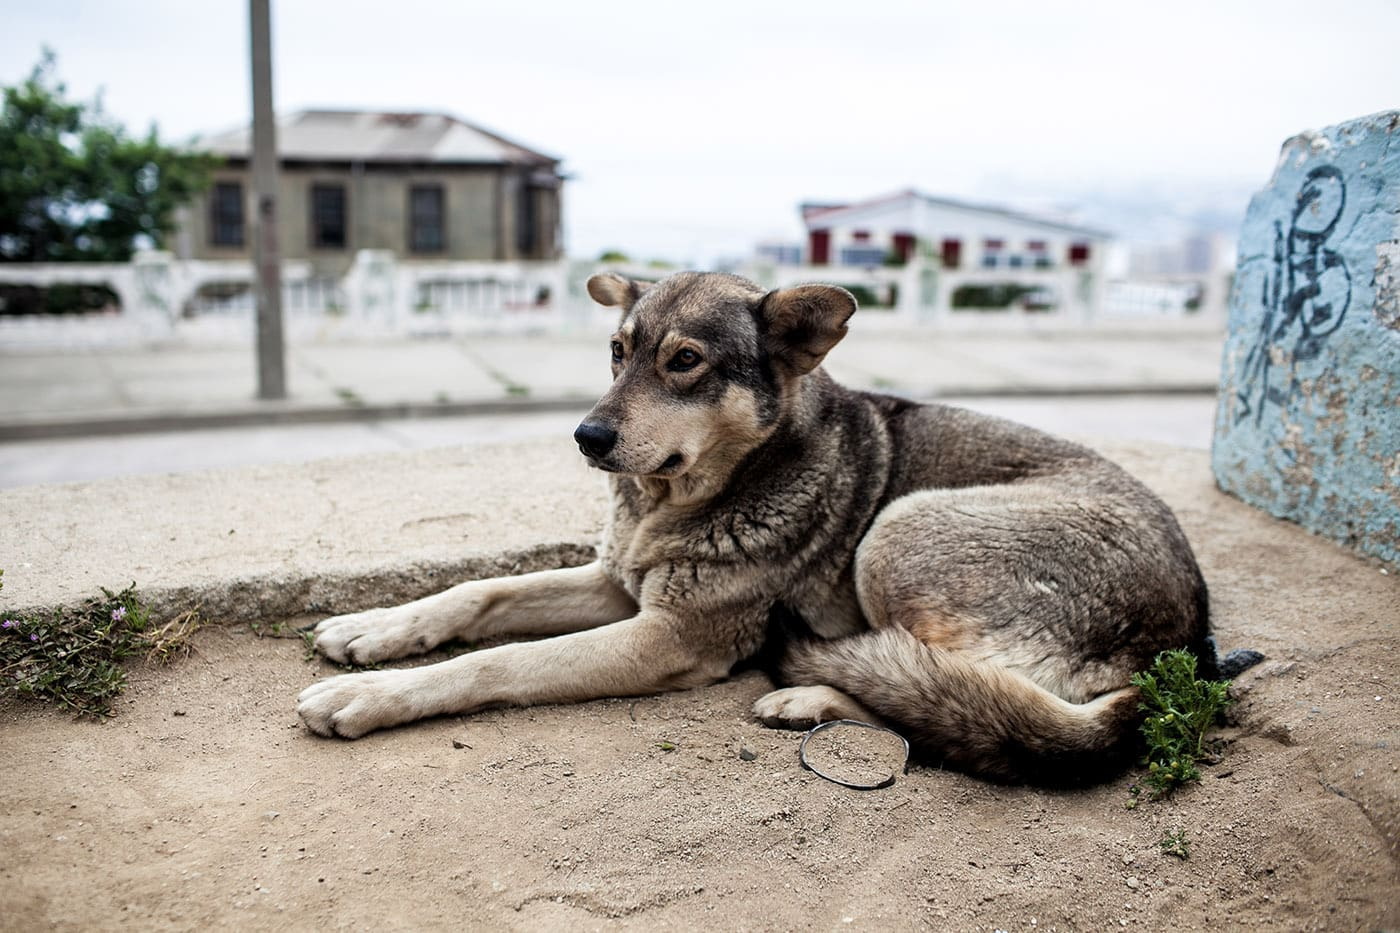 Street dog in Valparaiso, Chile